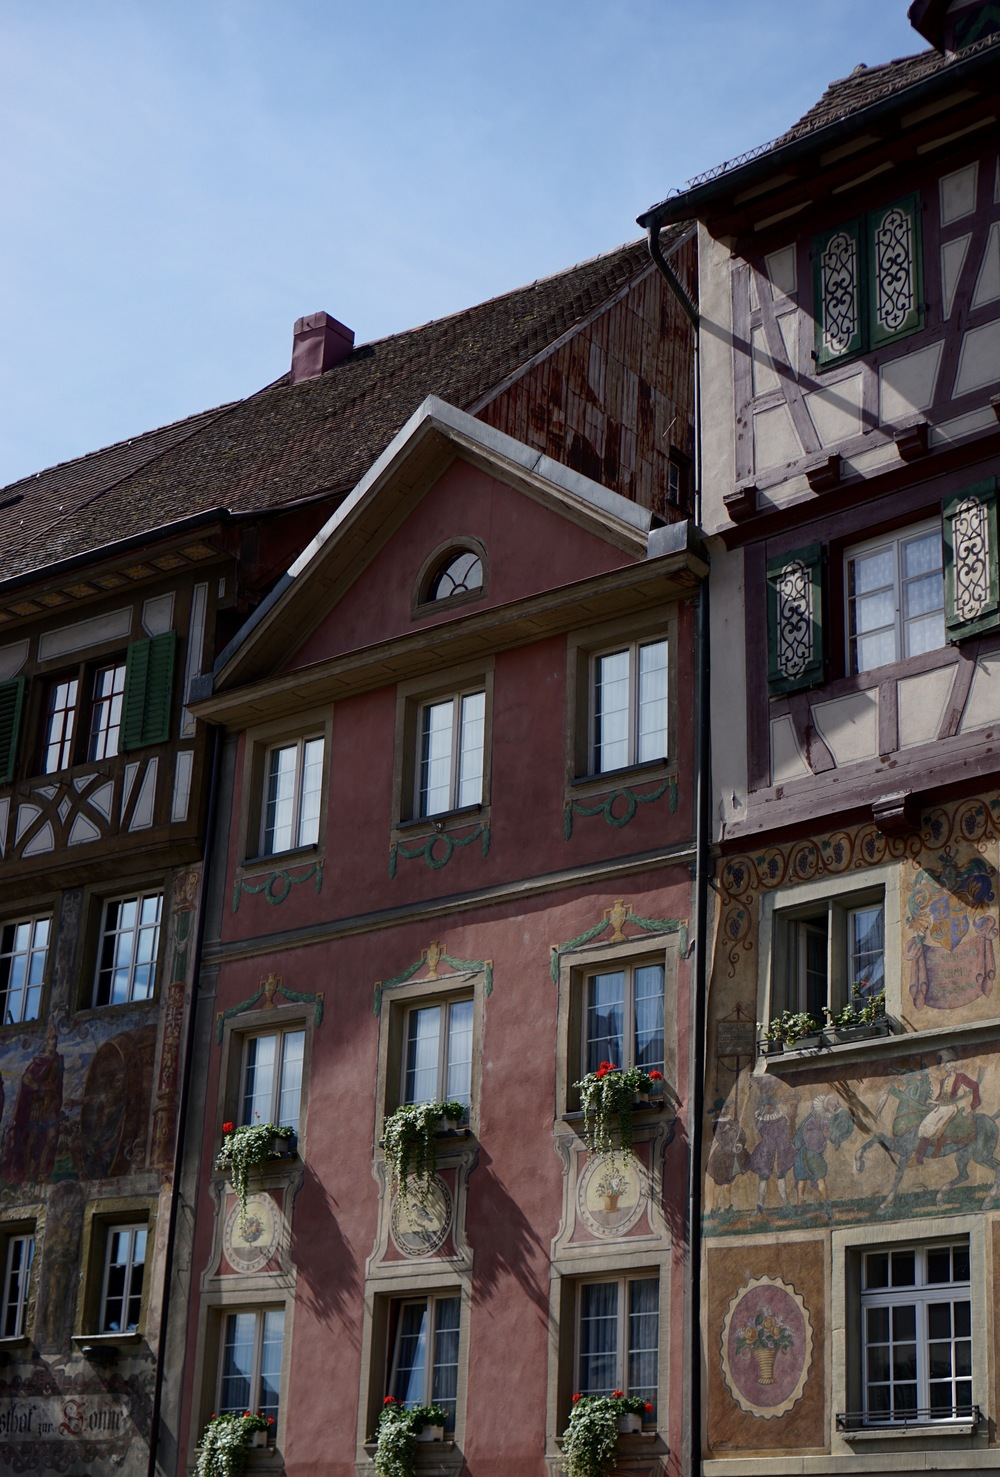 Painted buildings at Stein am Rein